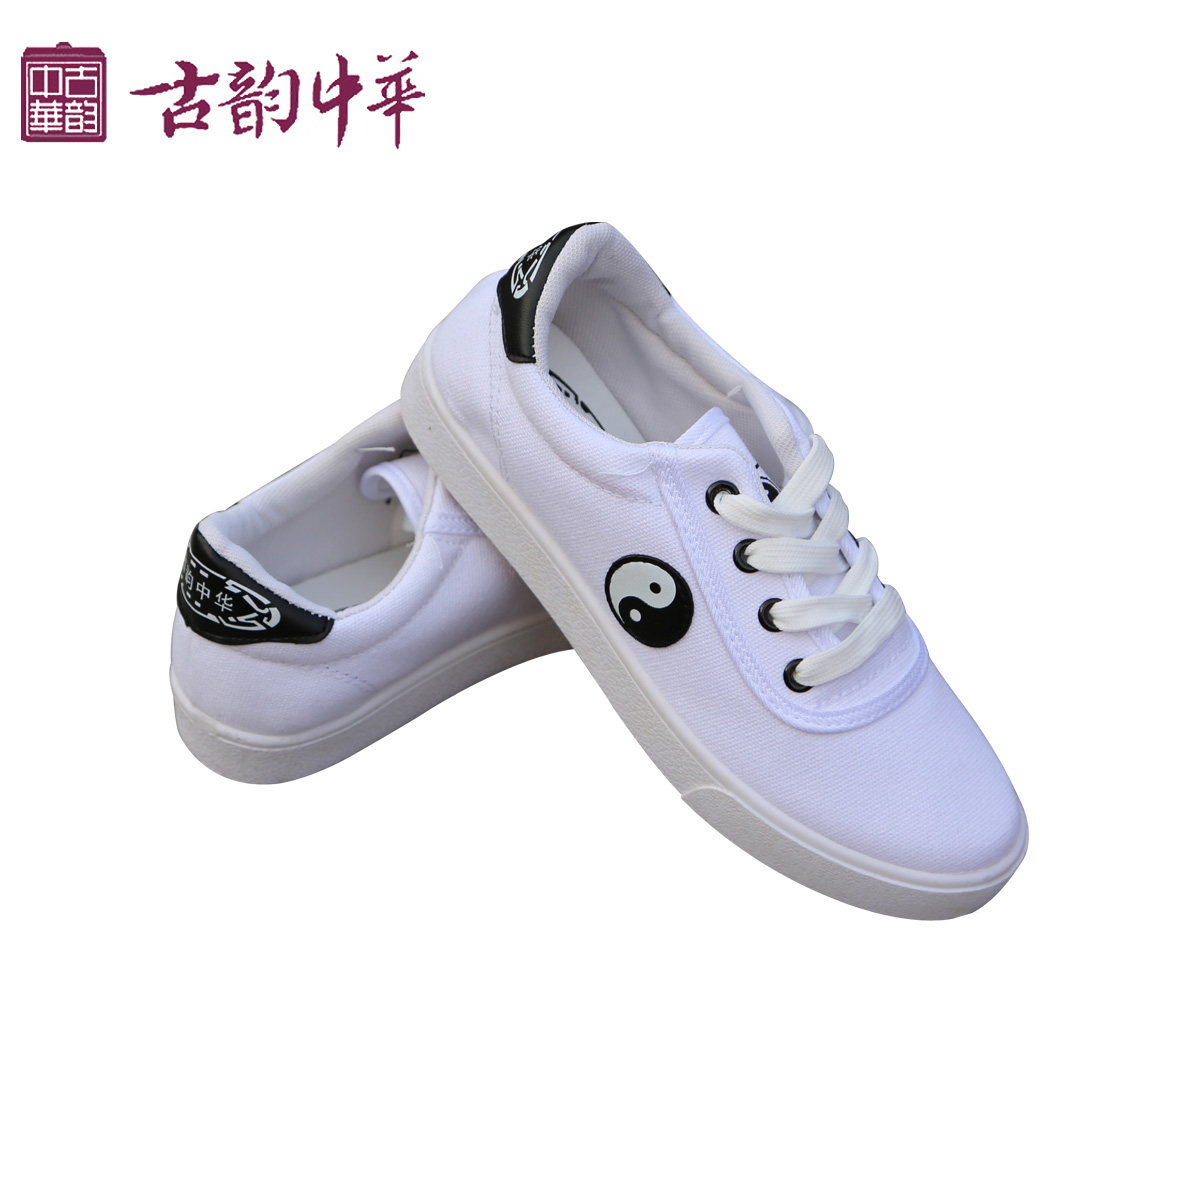 Buy Ancient chinese cotton canvas shoes tai chi shoes vigorous sports shoes  in black and white male and female models promotions in Cheap Price on ... 930fbc132a